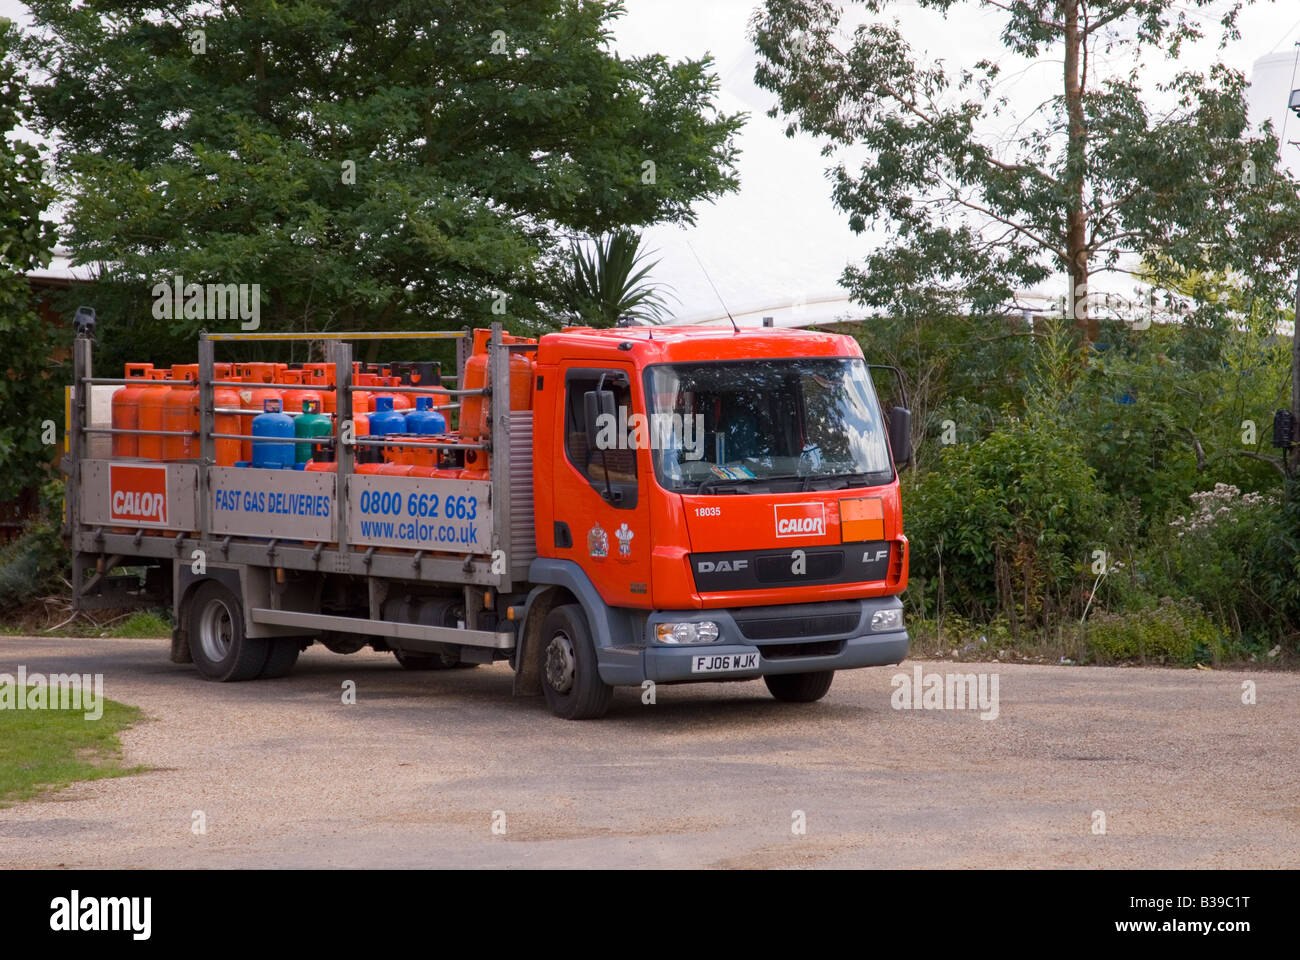 Propane and butane gas cylinders on lorry being delivered (calor) - Stock Image